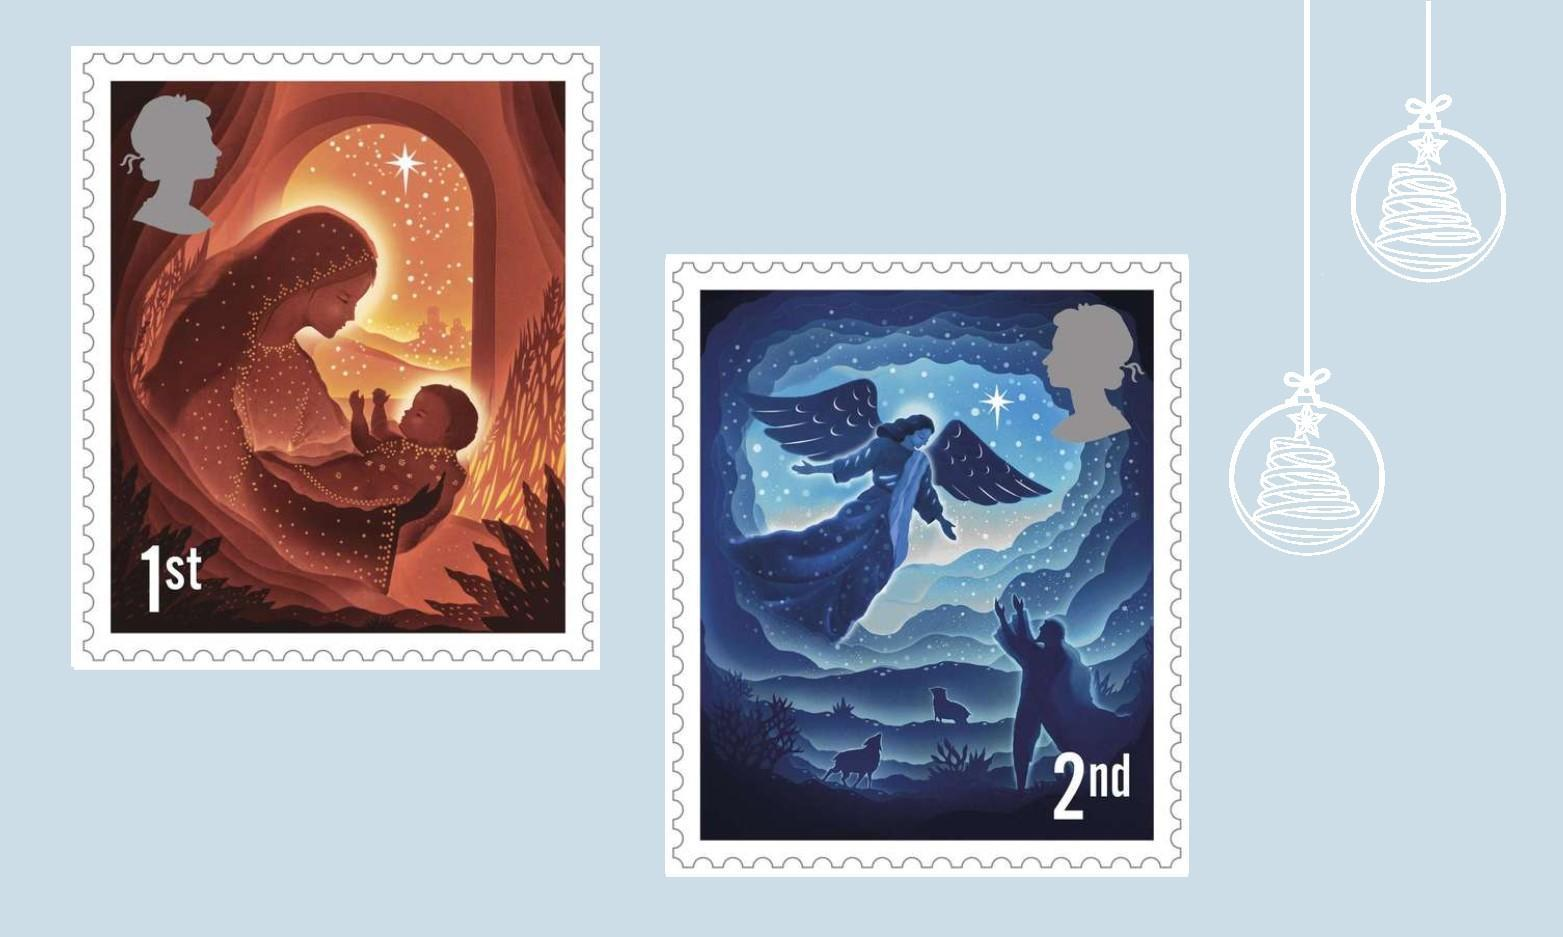 Royal Mail Release Christmas 2019 Stamps